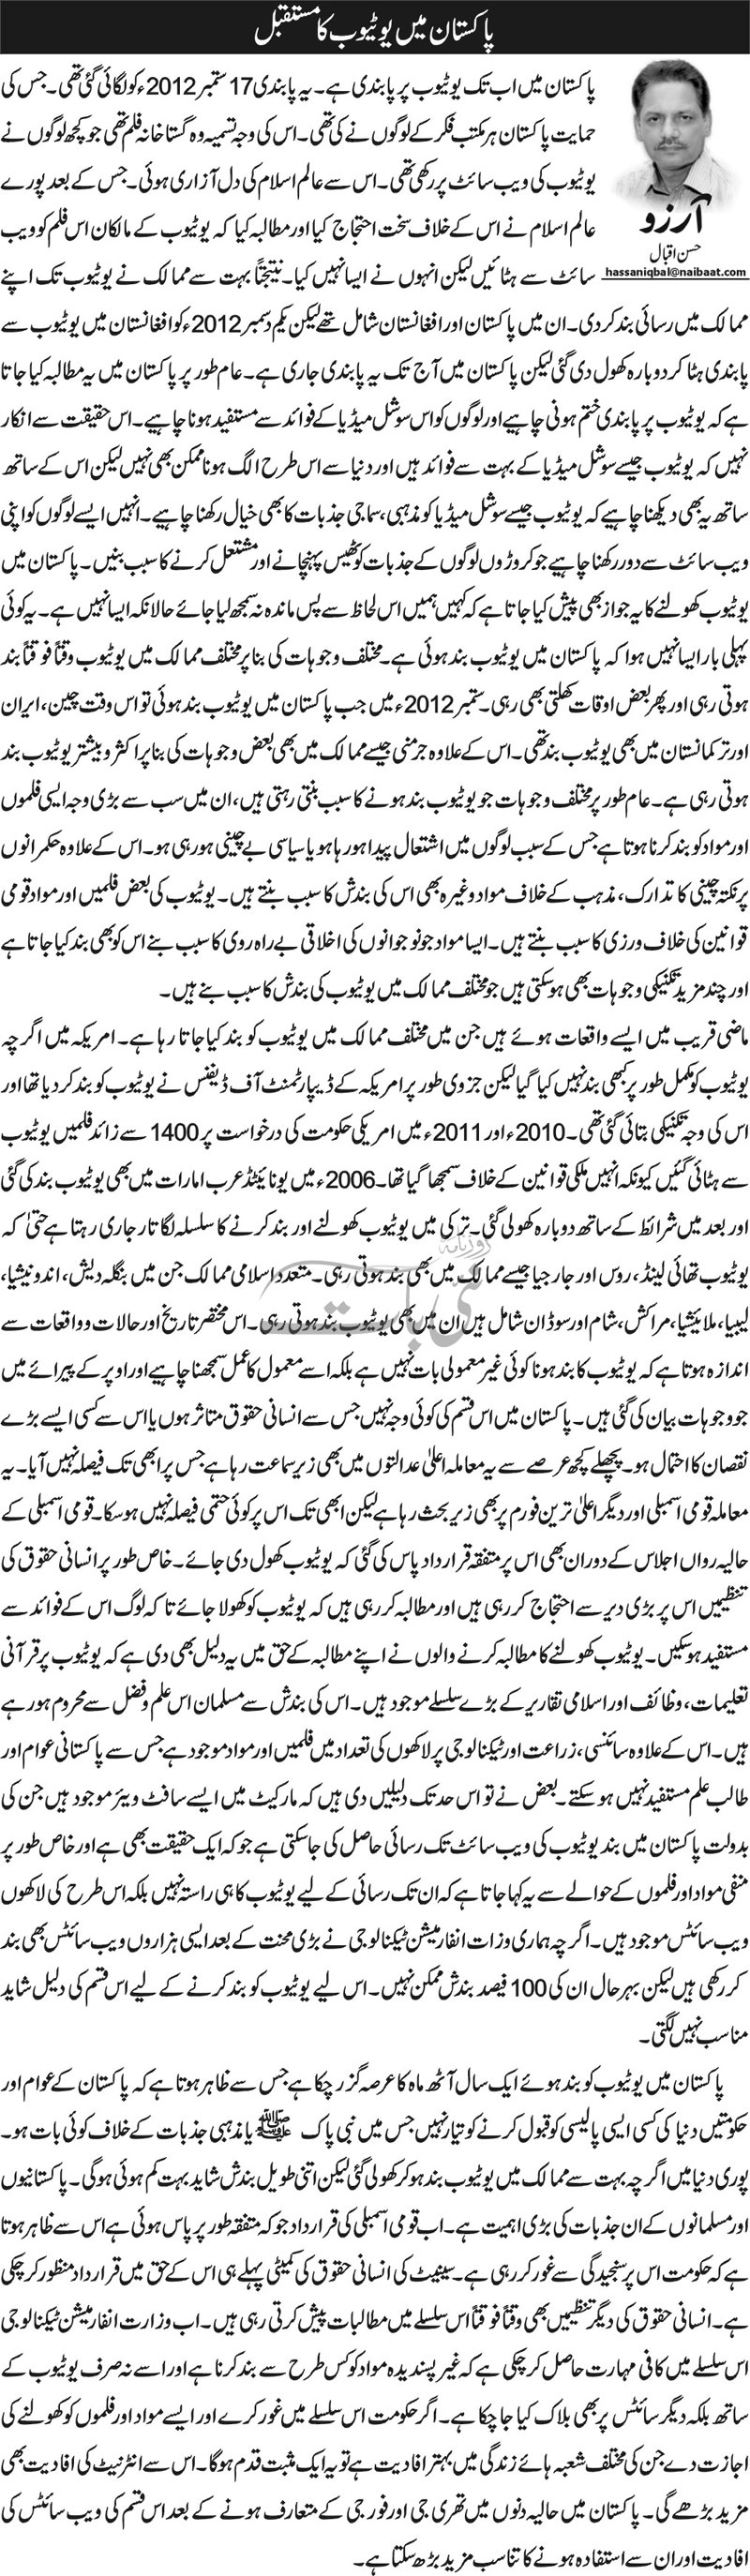 urdu columns about utube